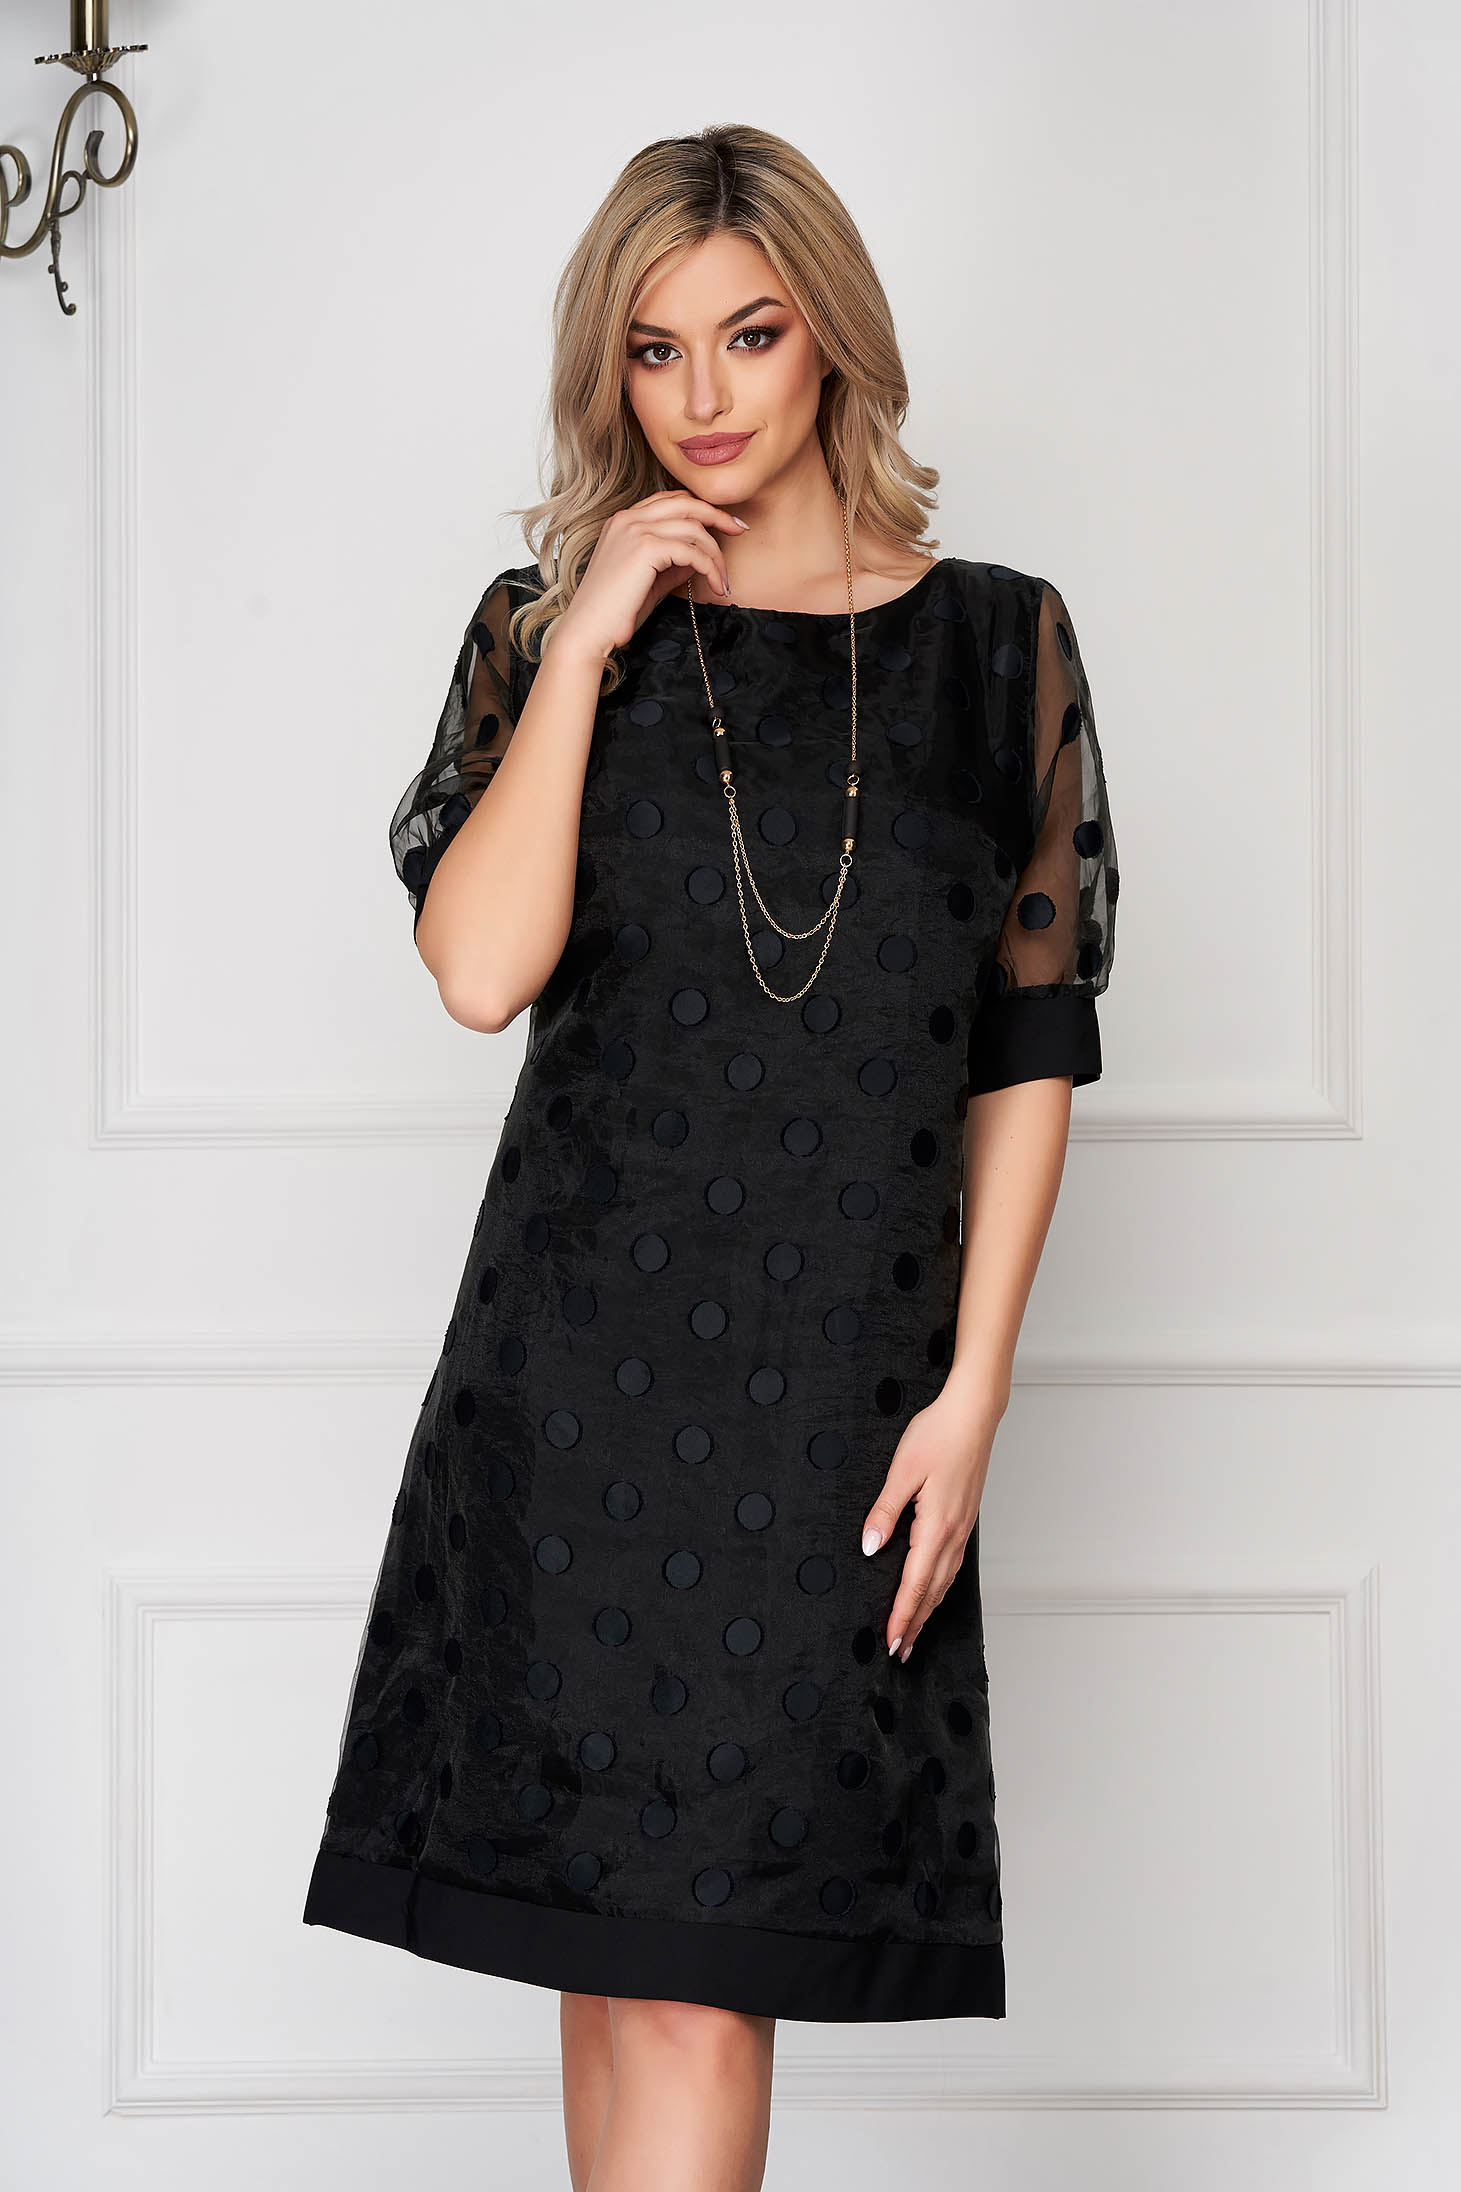 Black dress midi elegant a-line with veil sleeves accessorized with chain